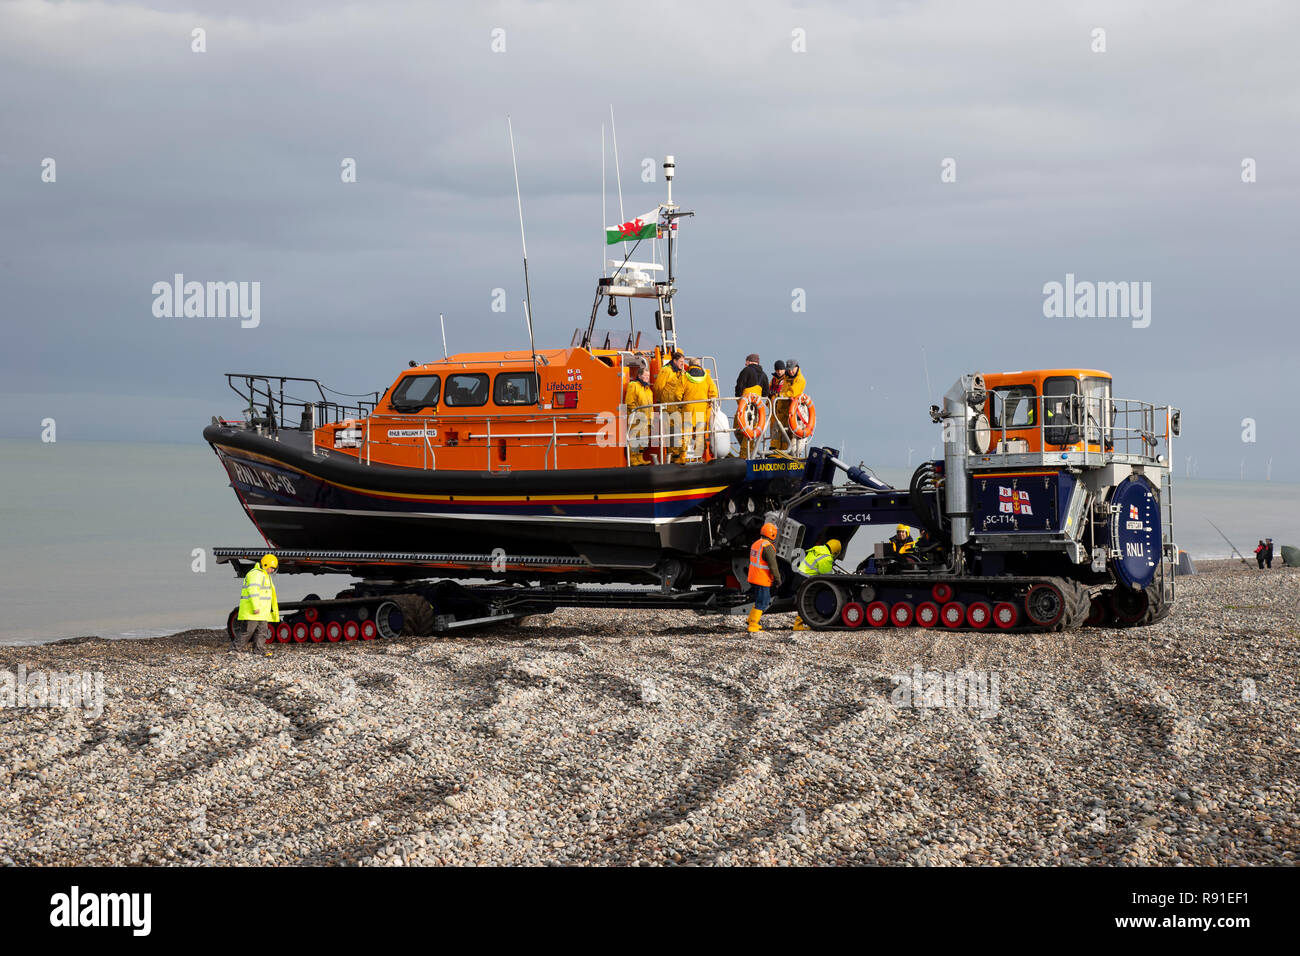 RNLI Shannon Class Lifeboat William F Yates is retrieved from the sea at Llandudno's North shore following sea exercises - Stock Image